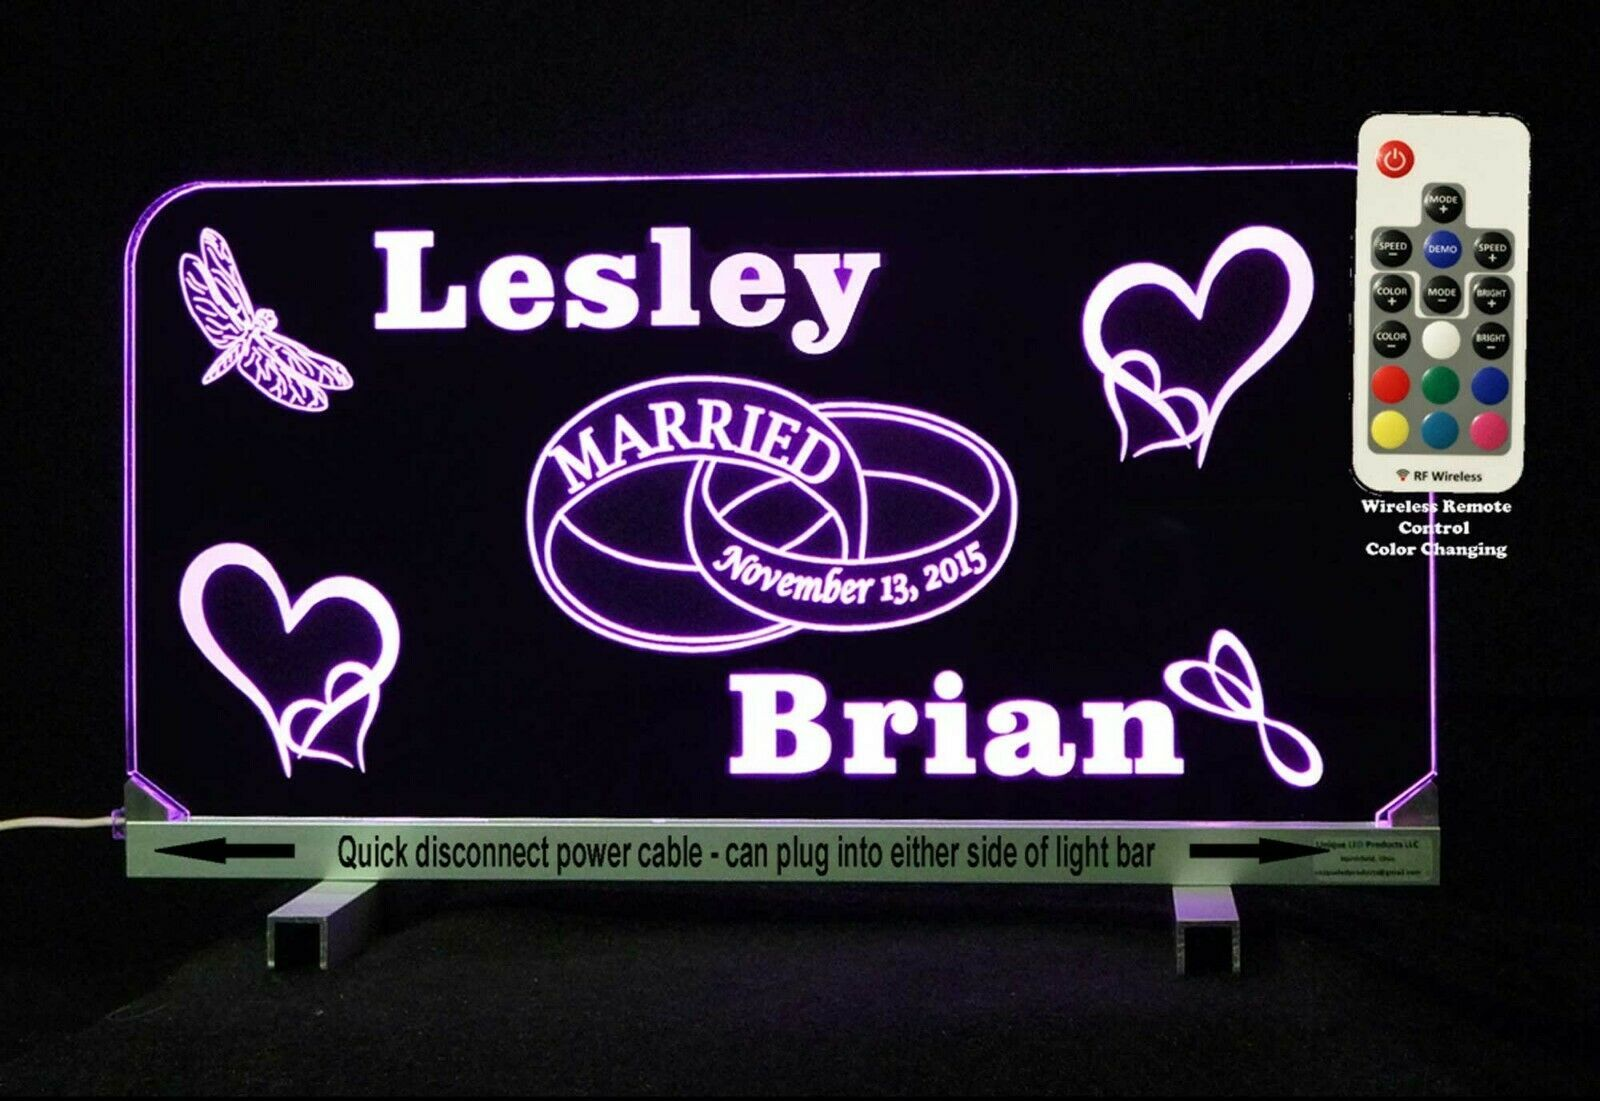 Primary image for LED Wedding Sign, Weddings, Wedding Gifts, Anniversary, Personalized Gifts